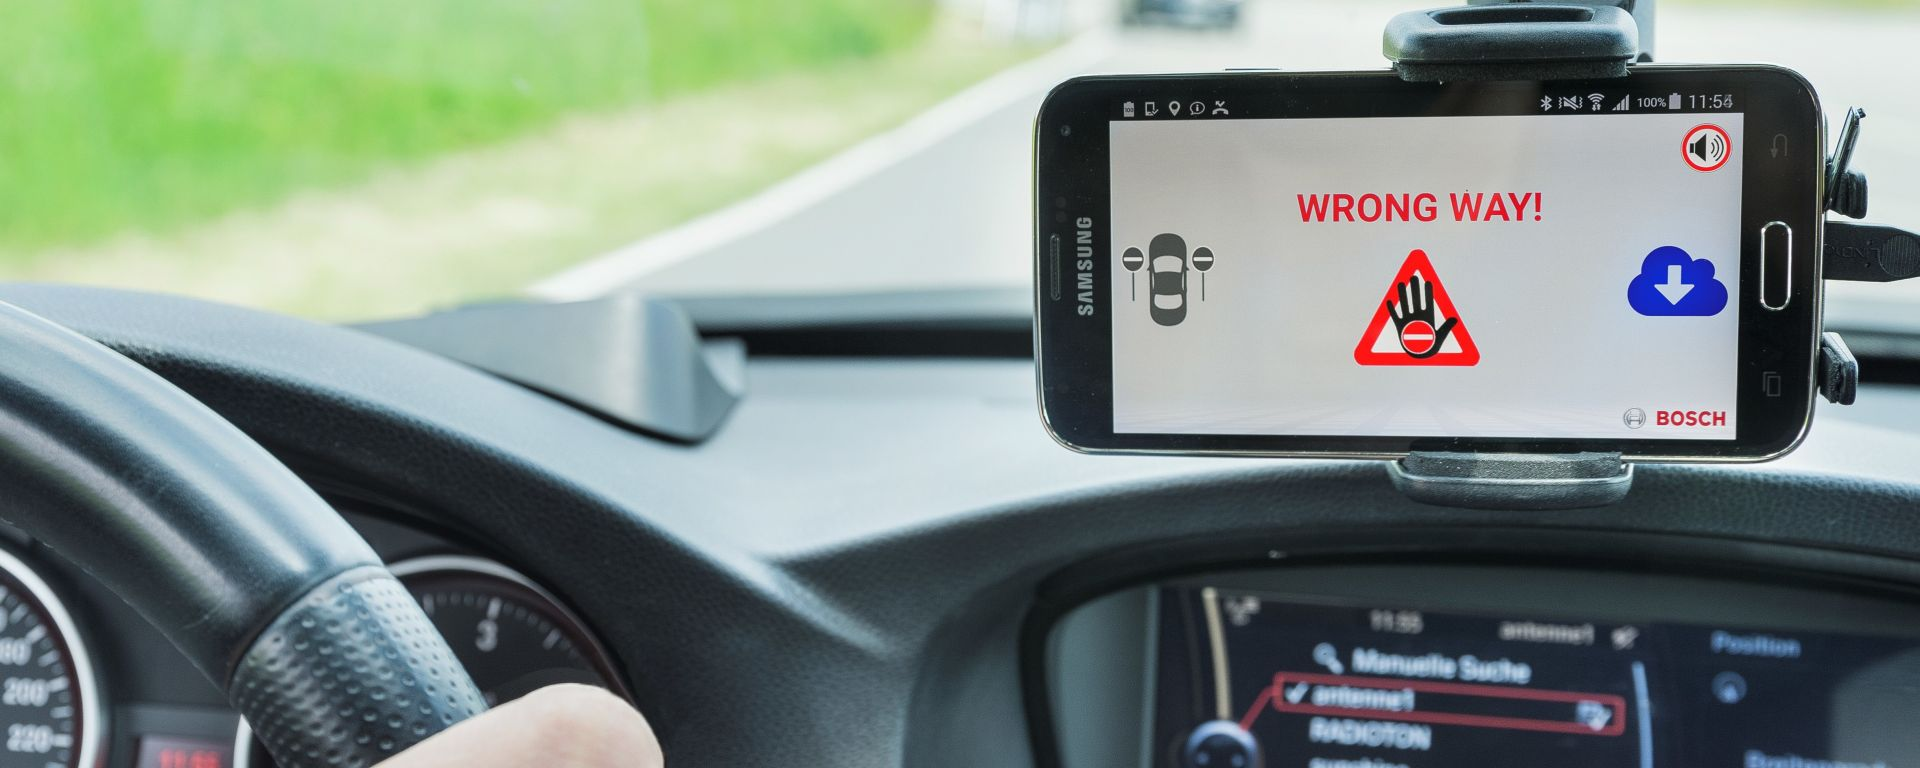 Bosch wrong-way driver applicazione